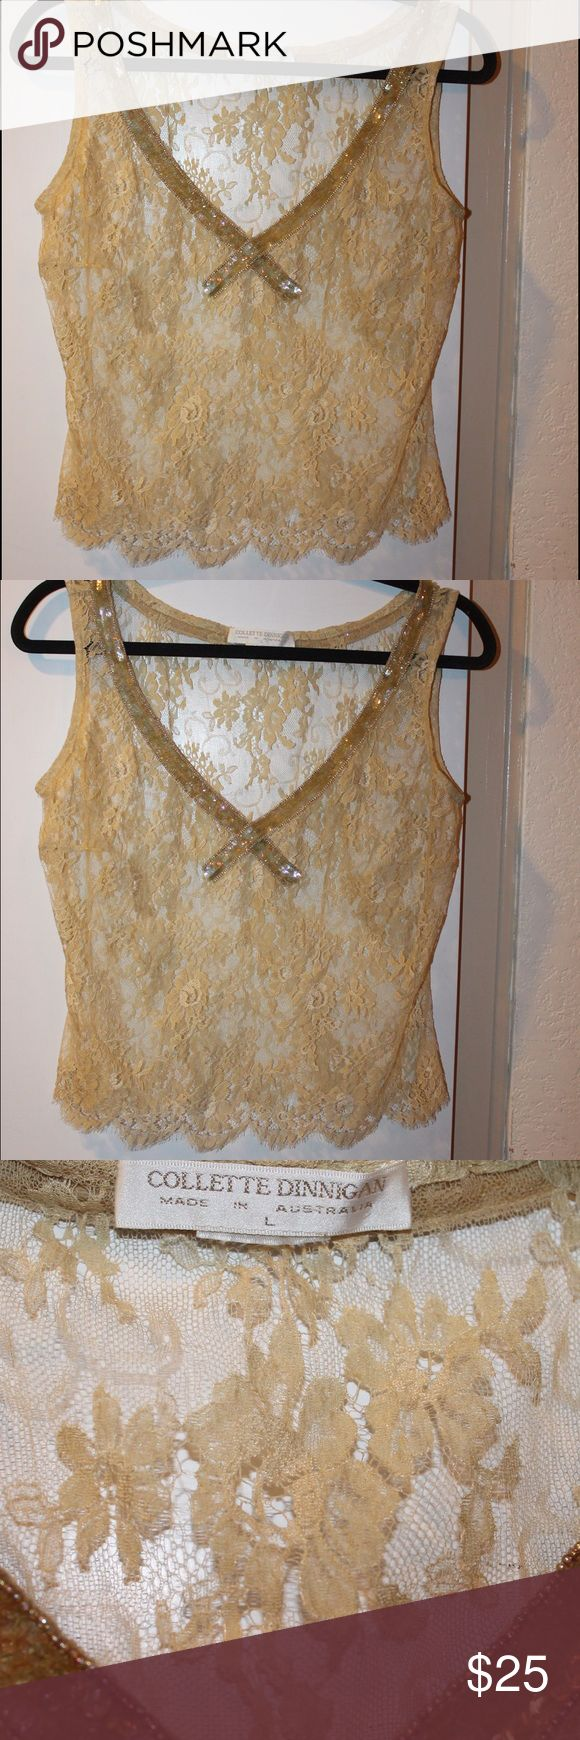 Sequined lace and scalloped sheer crop top Sequined lace and scalloped sheer crop top by Collette Dinnigan made in Australia size L Collette Dinnigan Tops